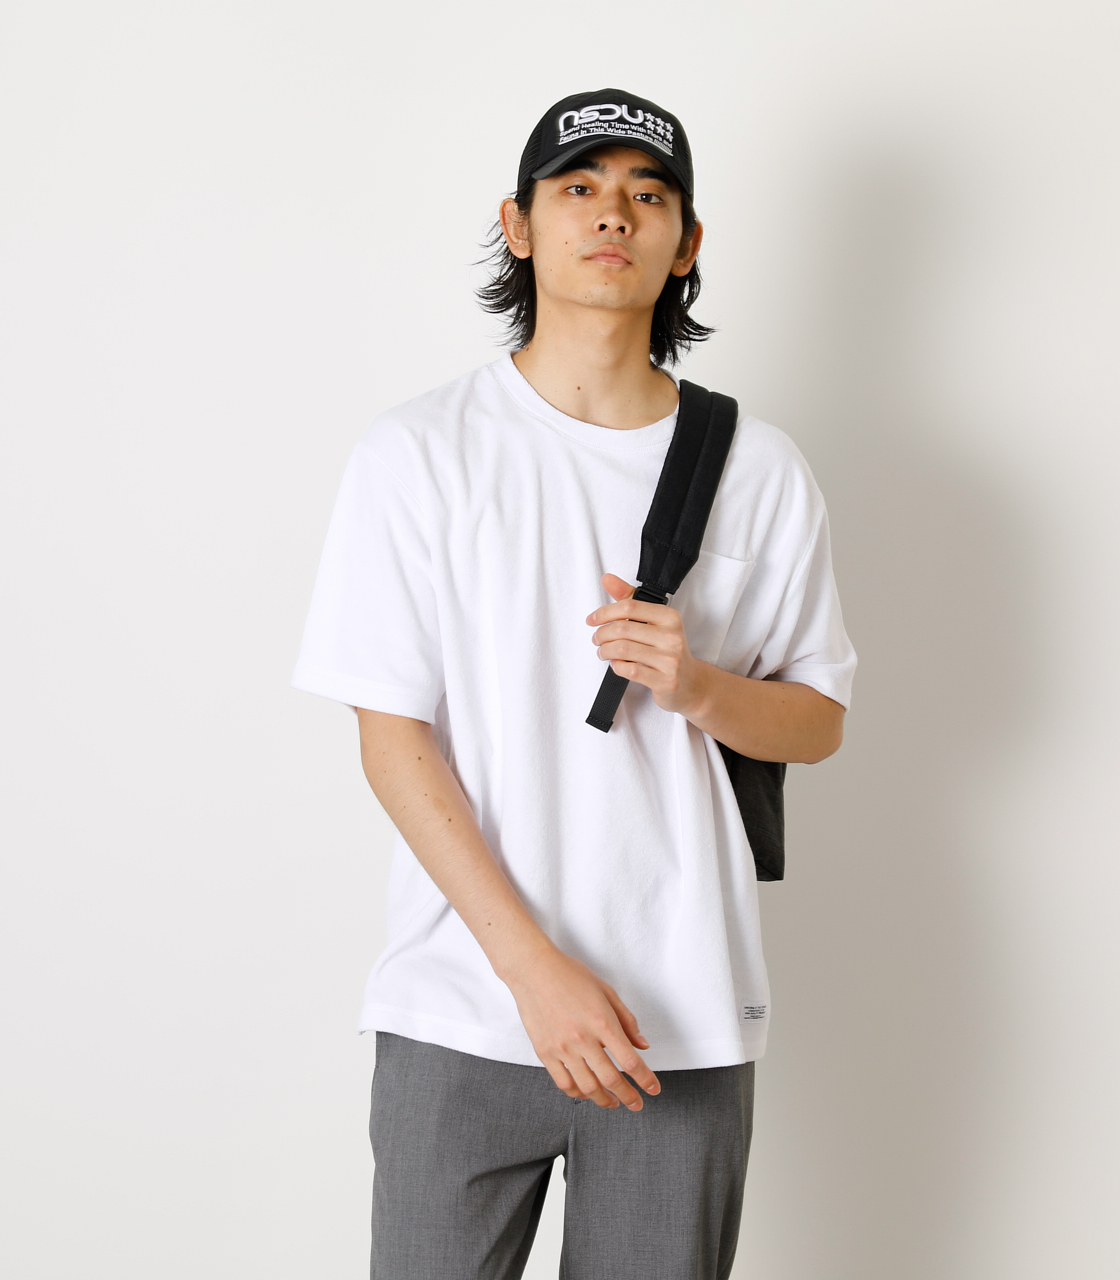 LOOSE PILE TOPS/ルーズパイルトップス 詳細画像 WHT 1